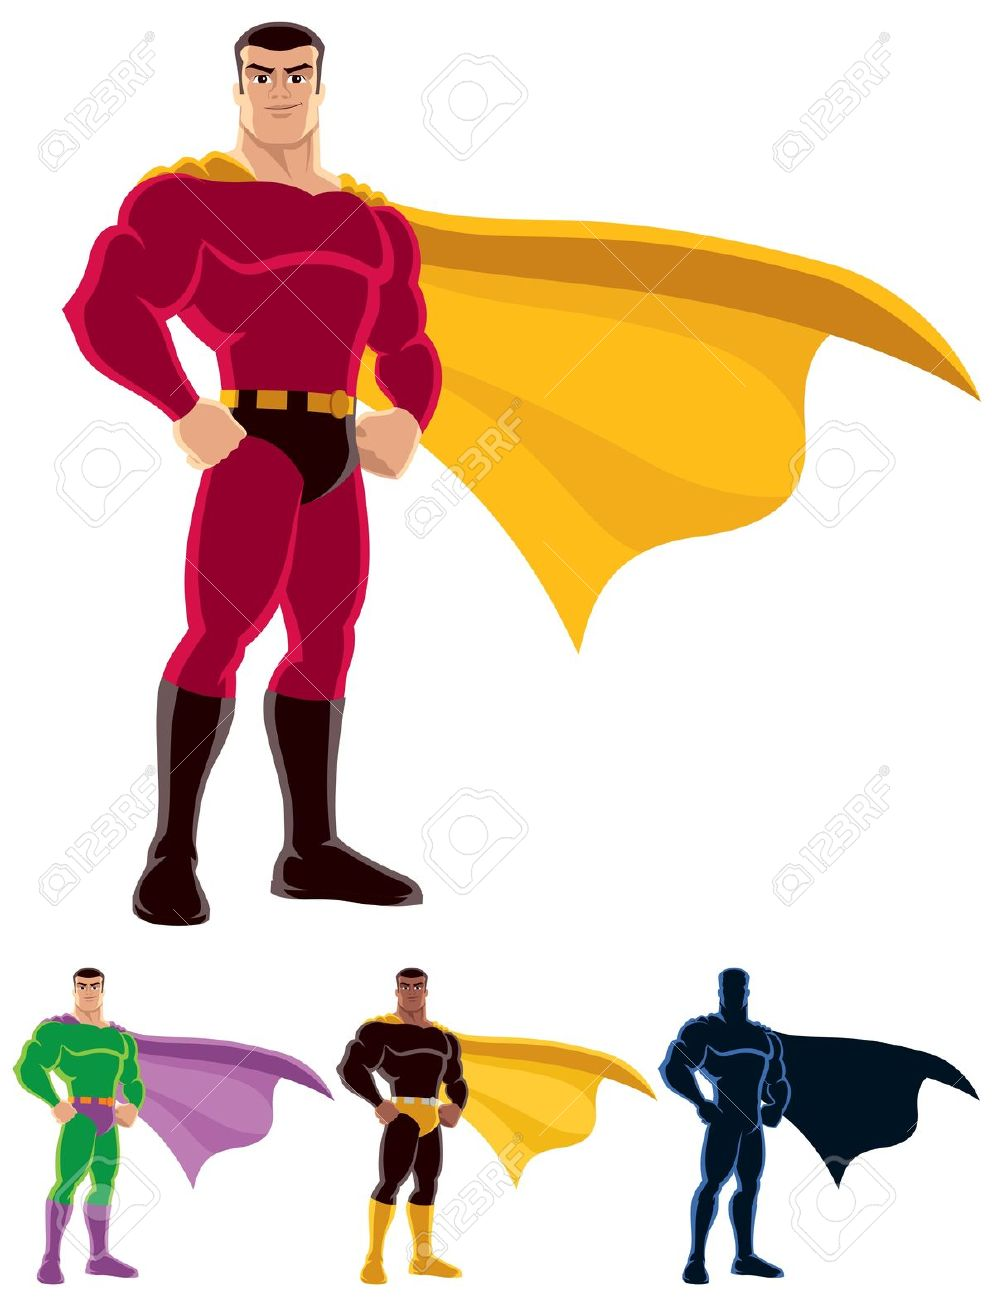 Superman without head clipart png black and white library Superhero cape no head clipart - ClipartFest png black and white library